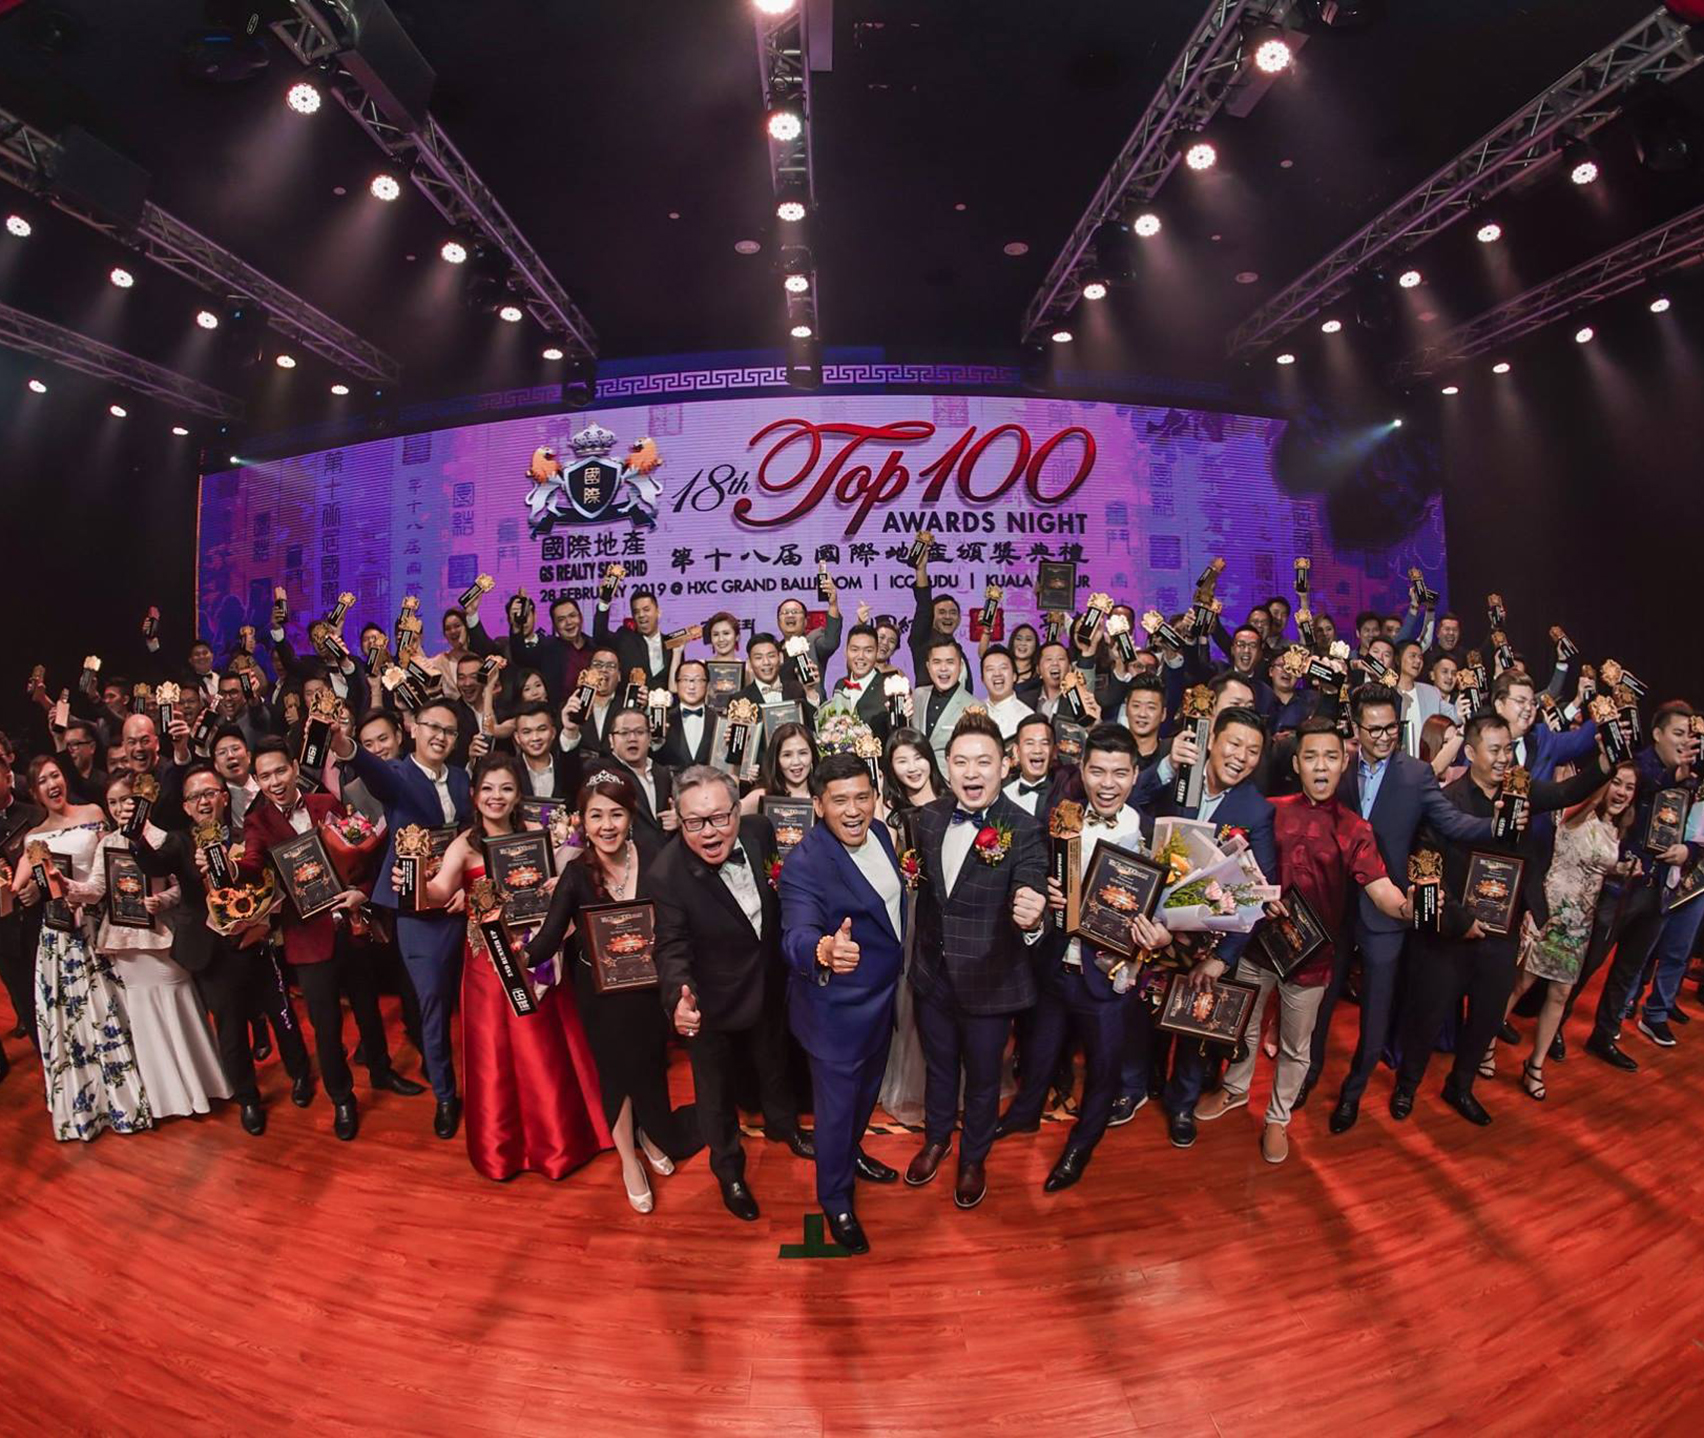 GS TOP100 Awards Night 2019 Group Photo